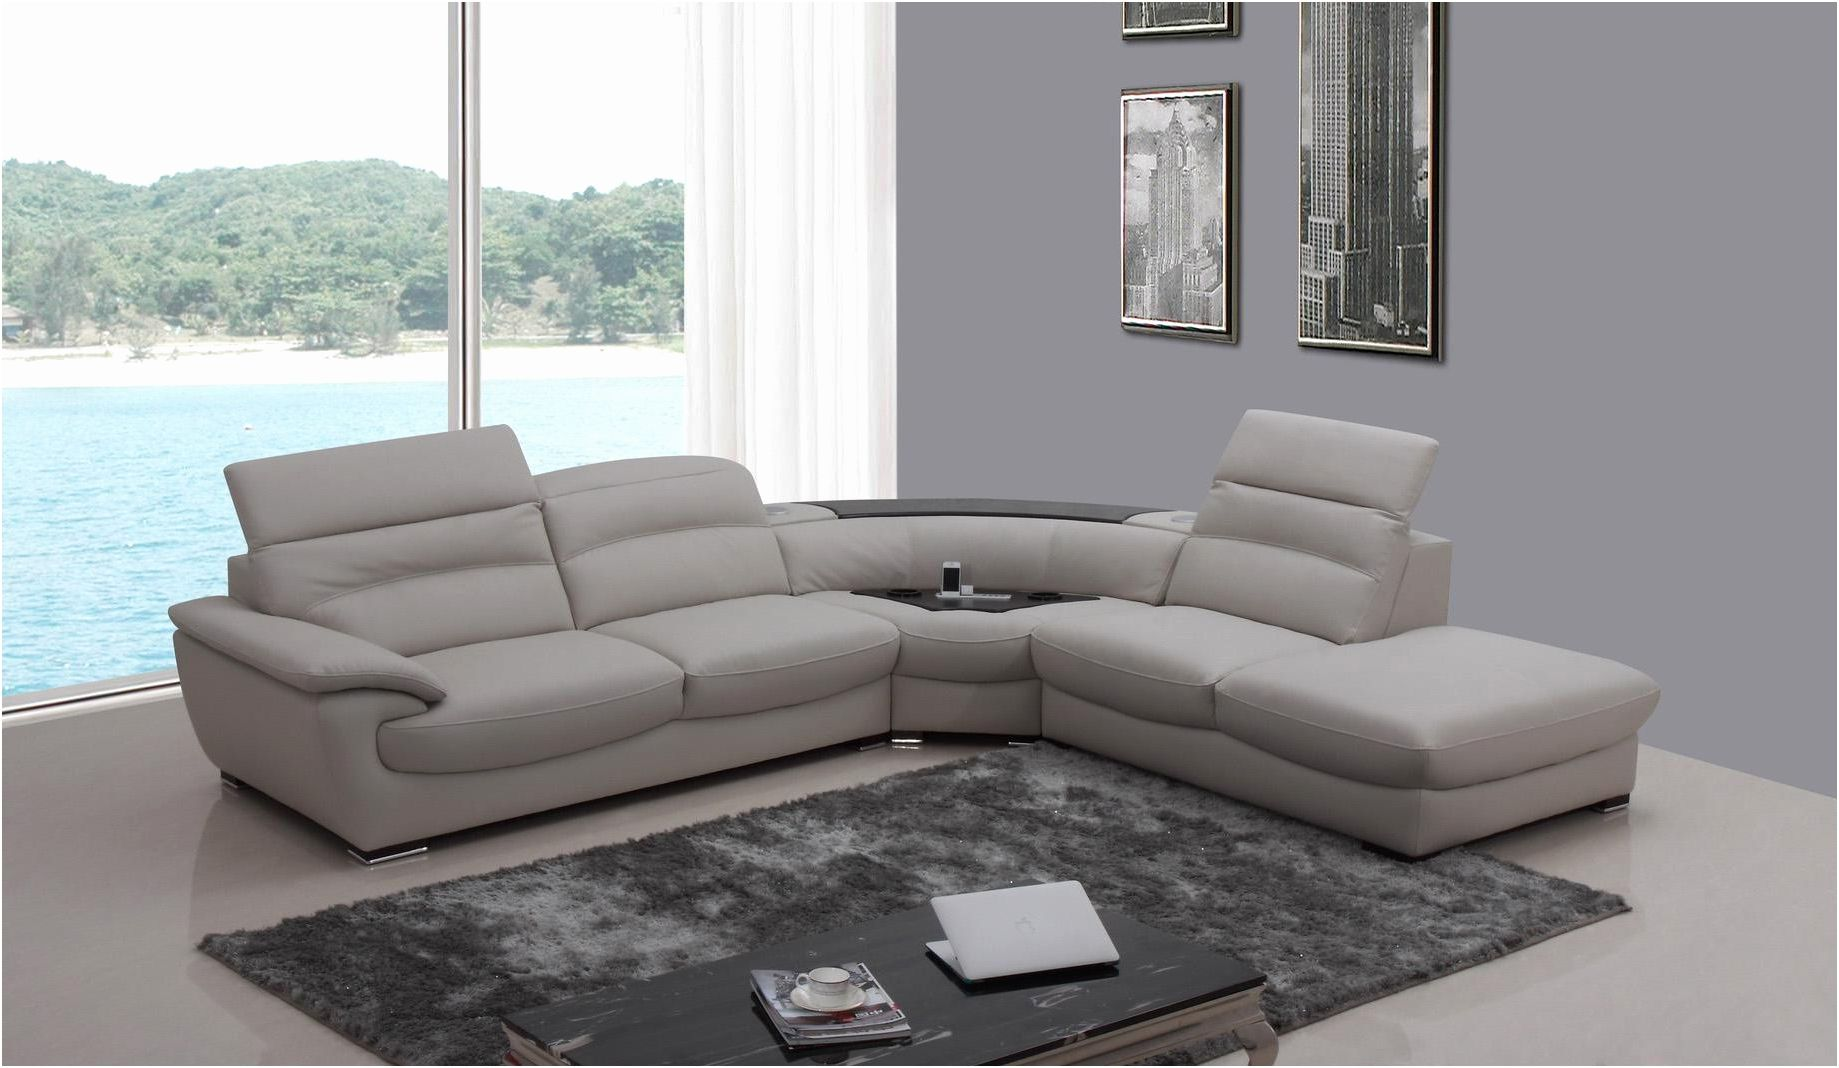 2018 unique sectional sofas with creativity for tasty distinctive rh pinterest com